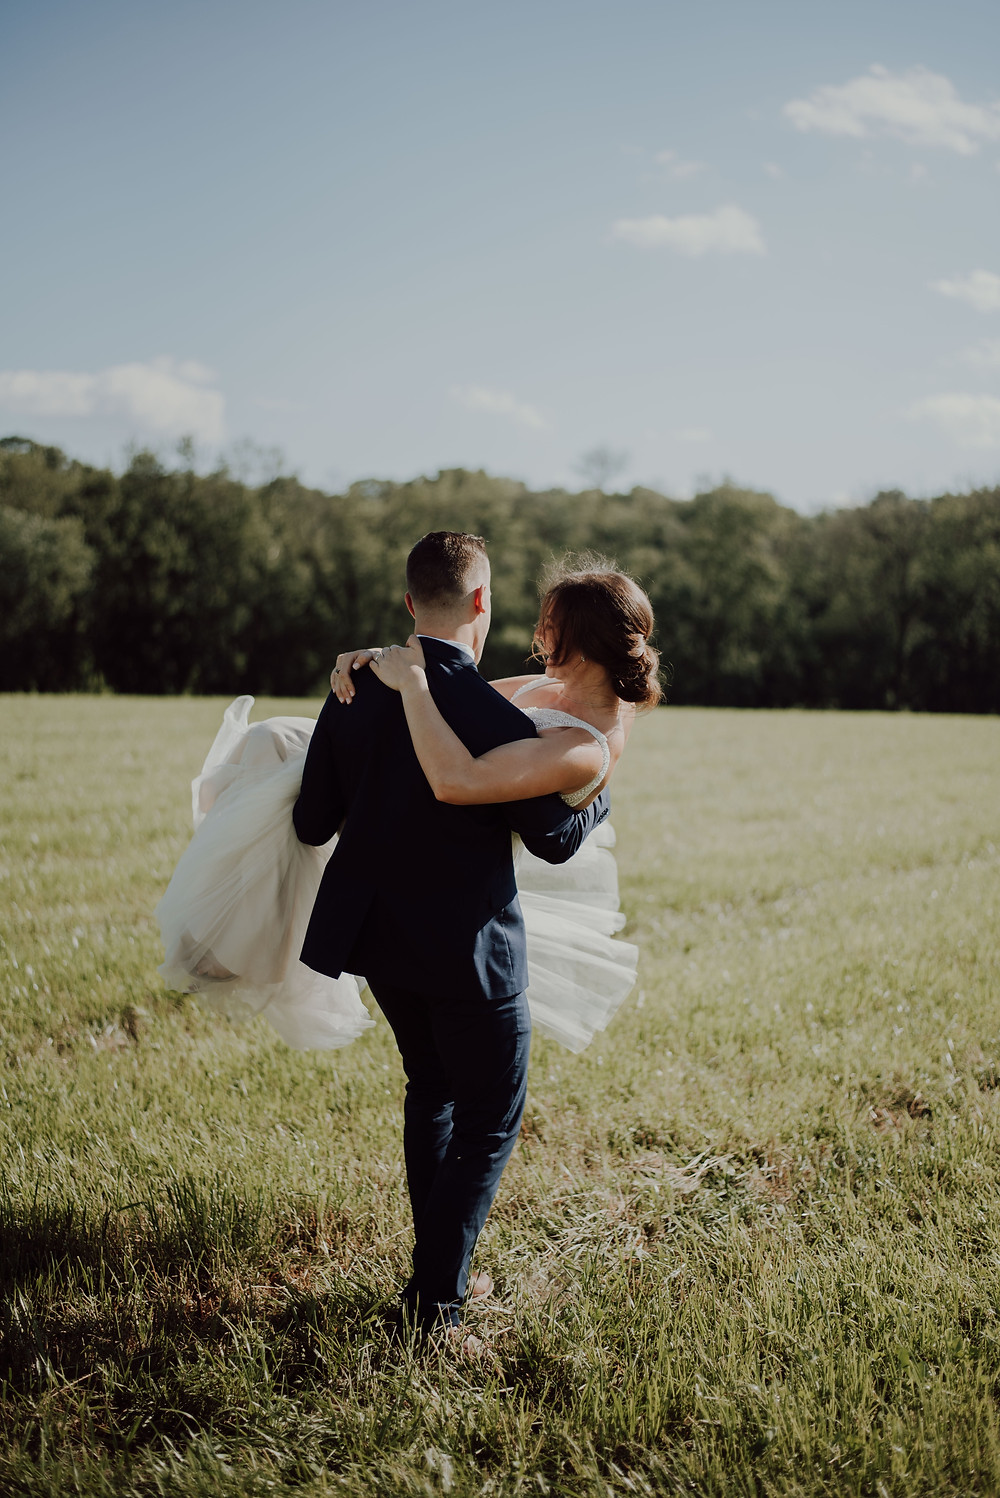 Groom carrying bride through a grassy field